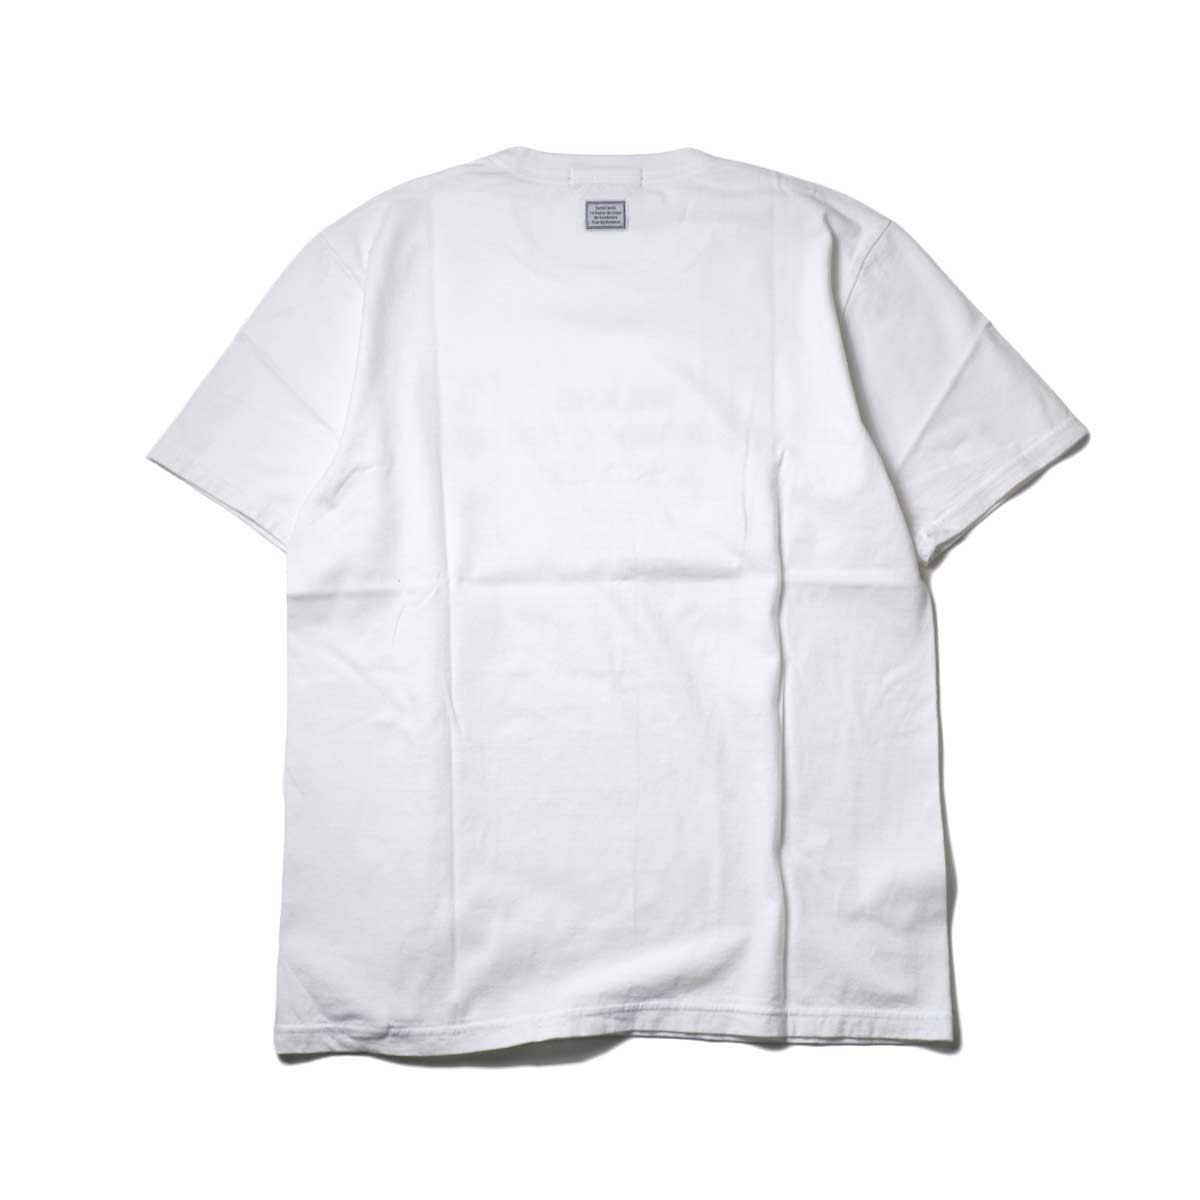 TANGTANG / UNDERCOVER -CHILDREN (White)背面